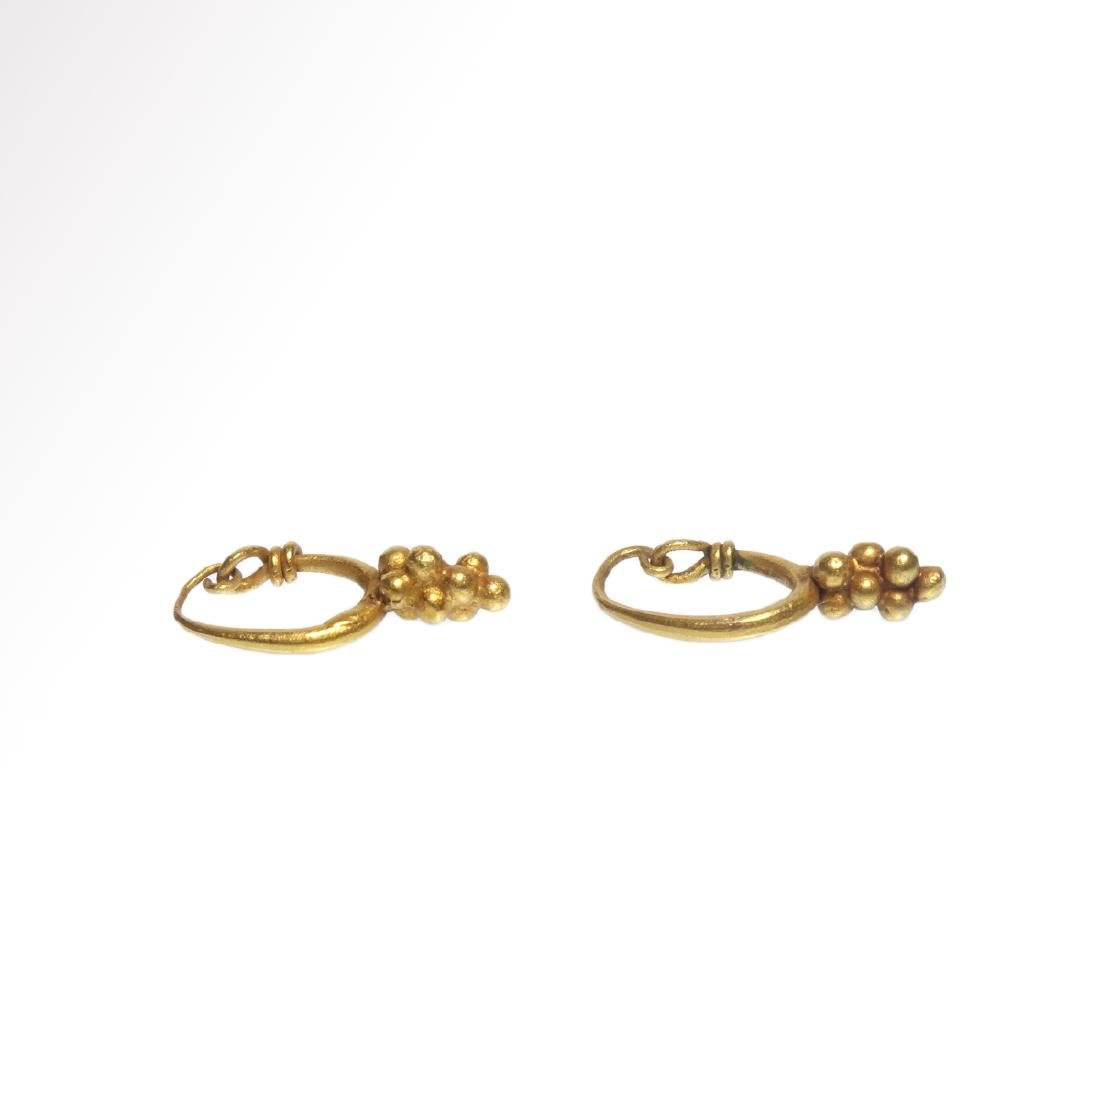 Roman Gold Earrings with Grape Drops, c. 1st - 3rd - 4